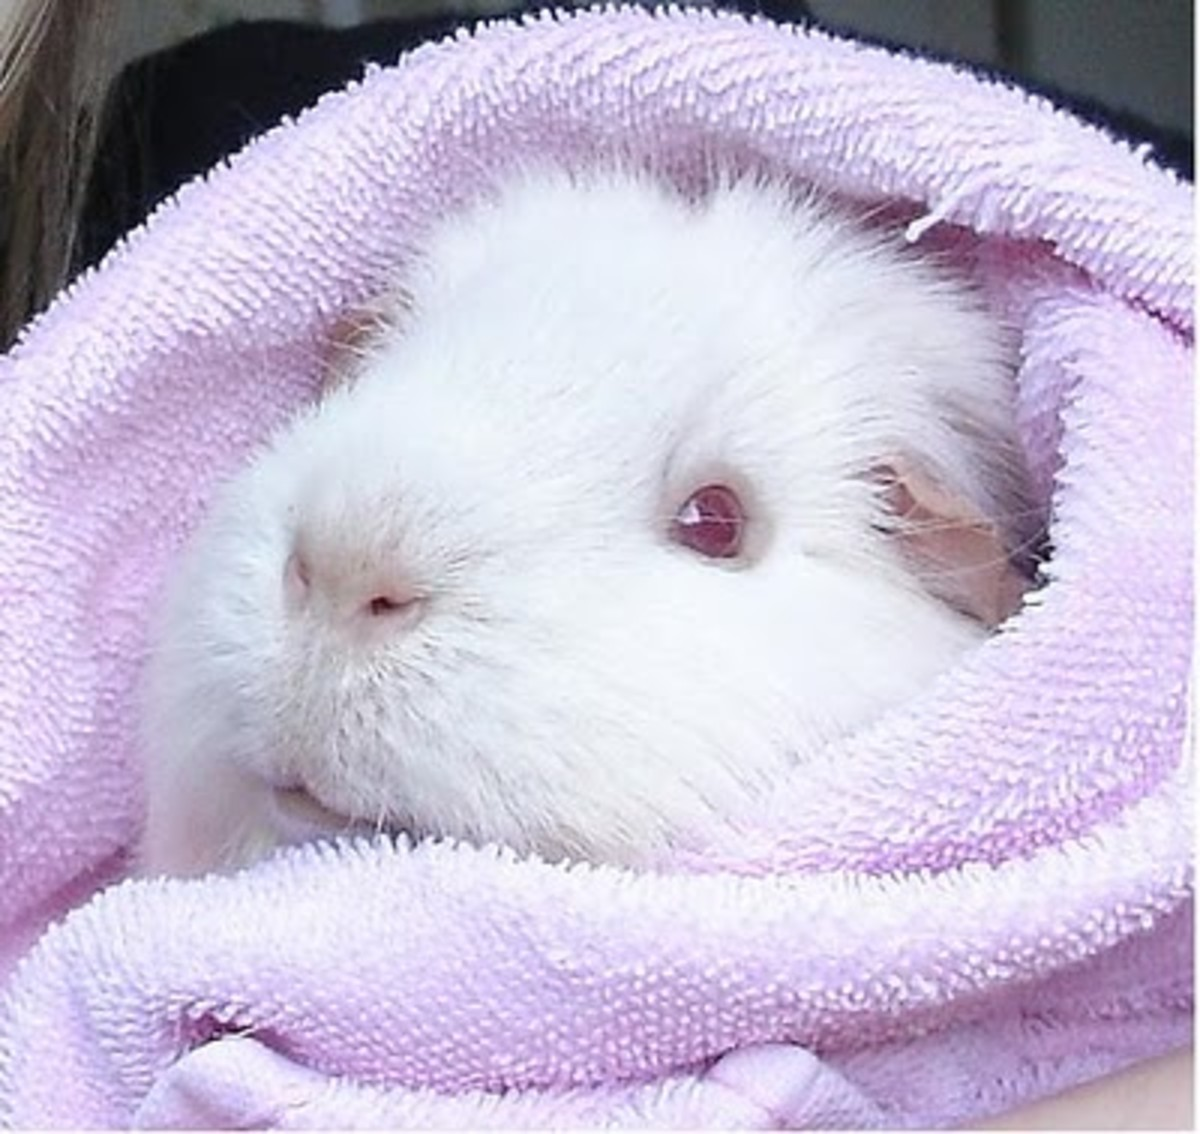 Albino guinea pigs are popular